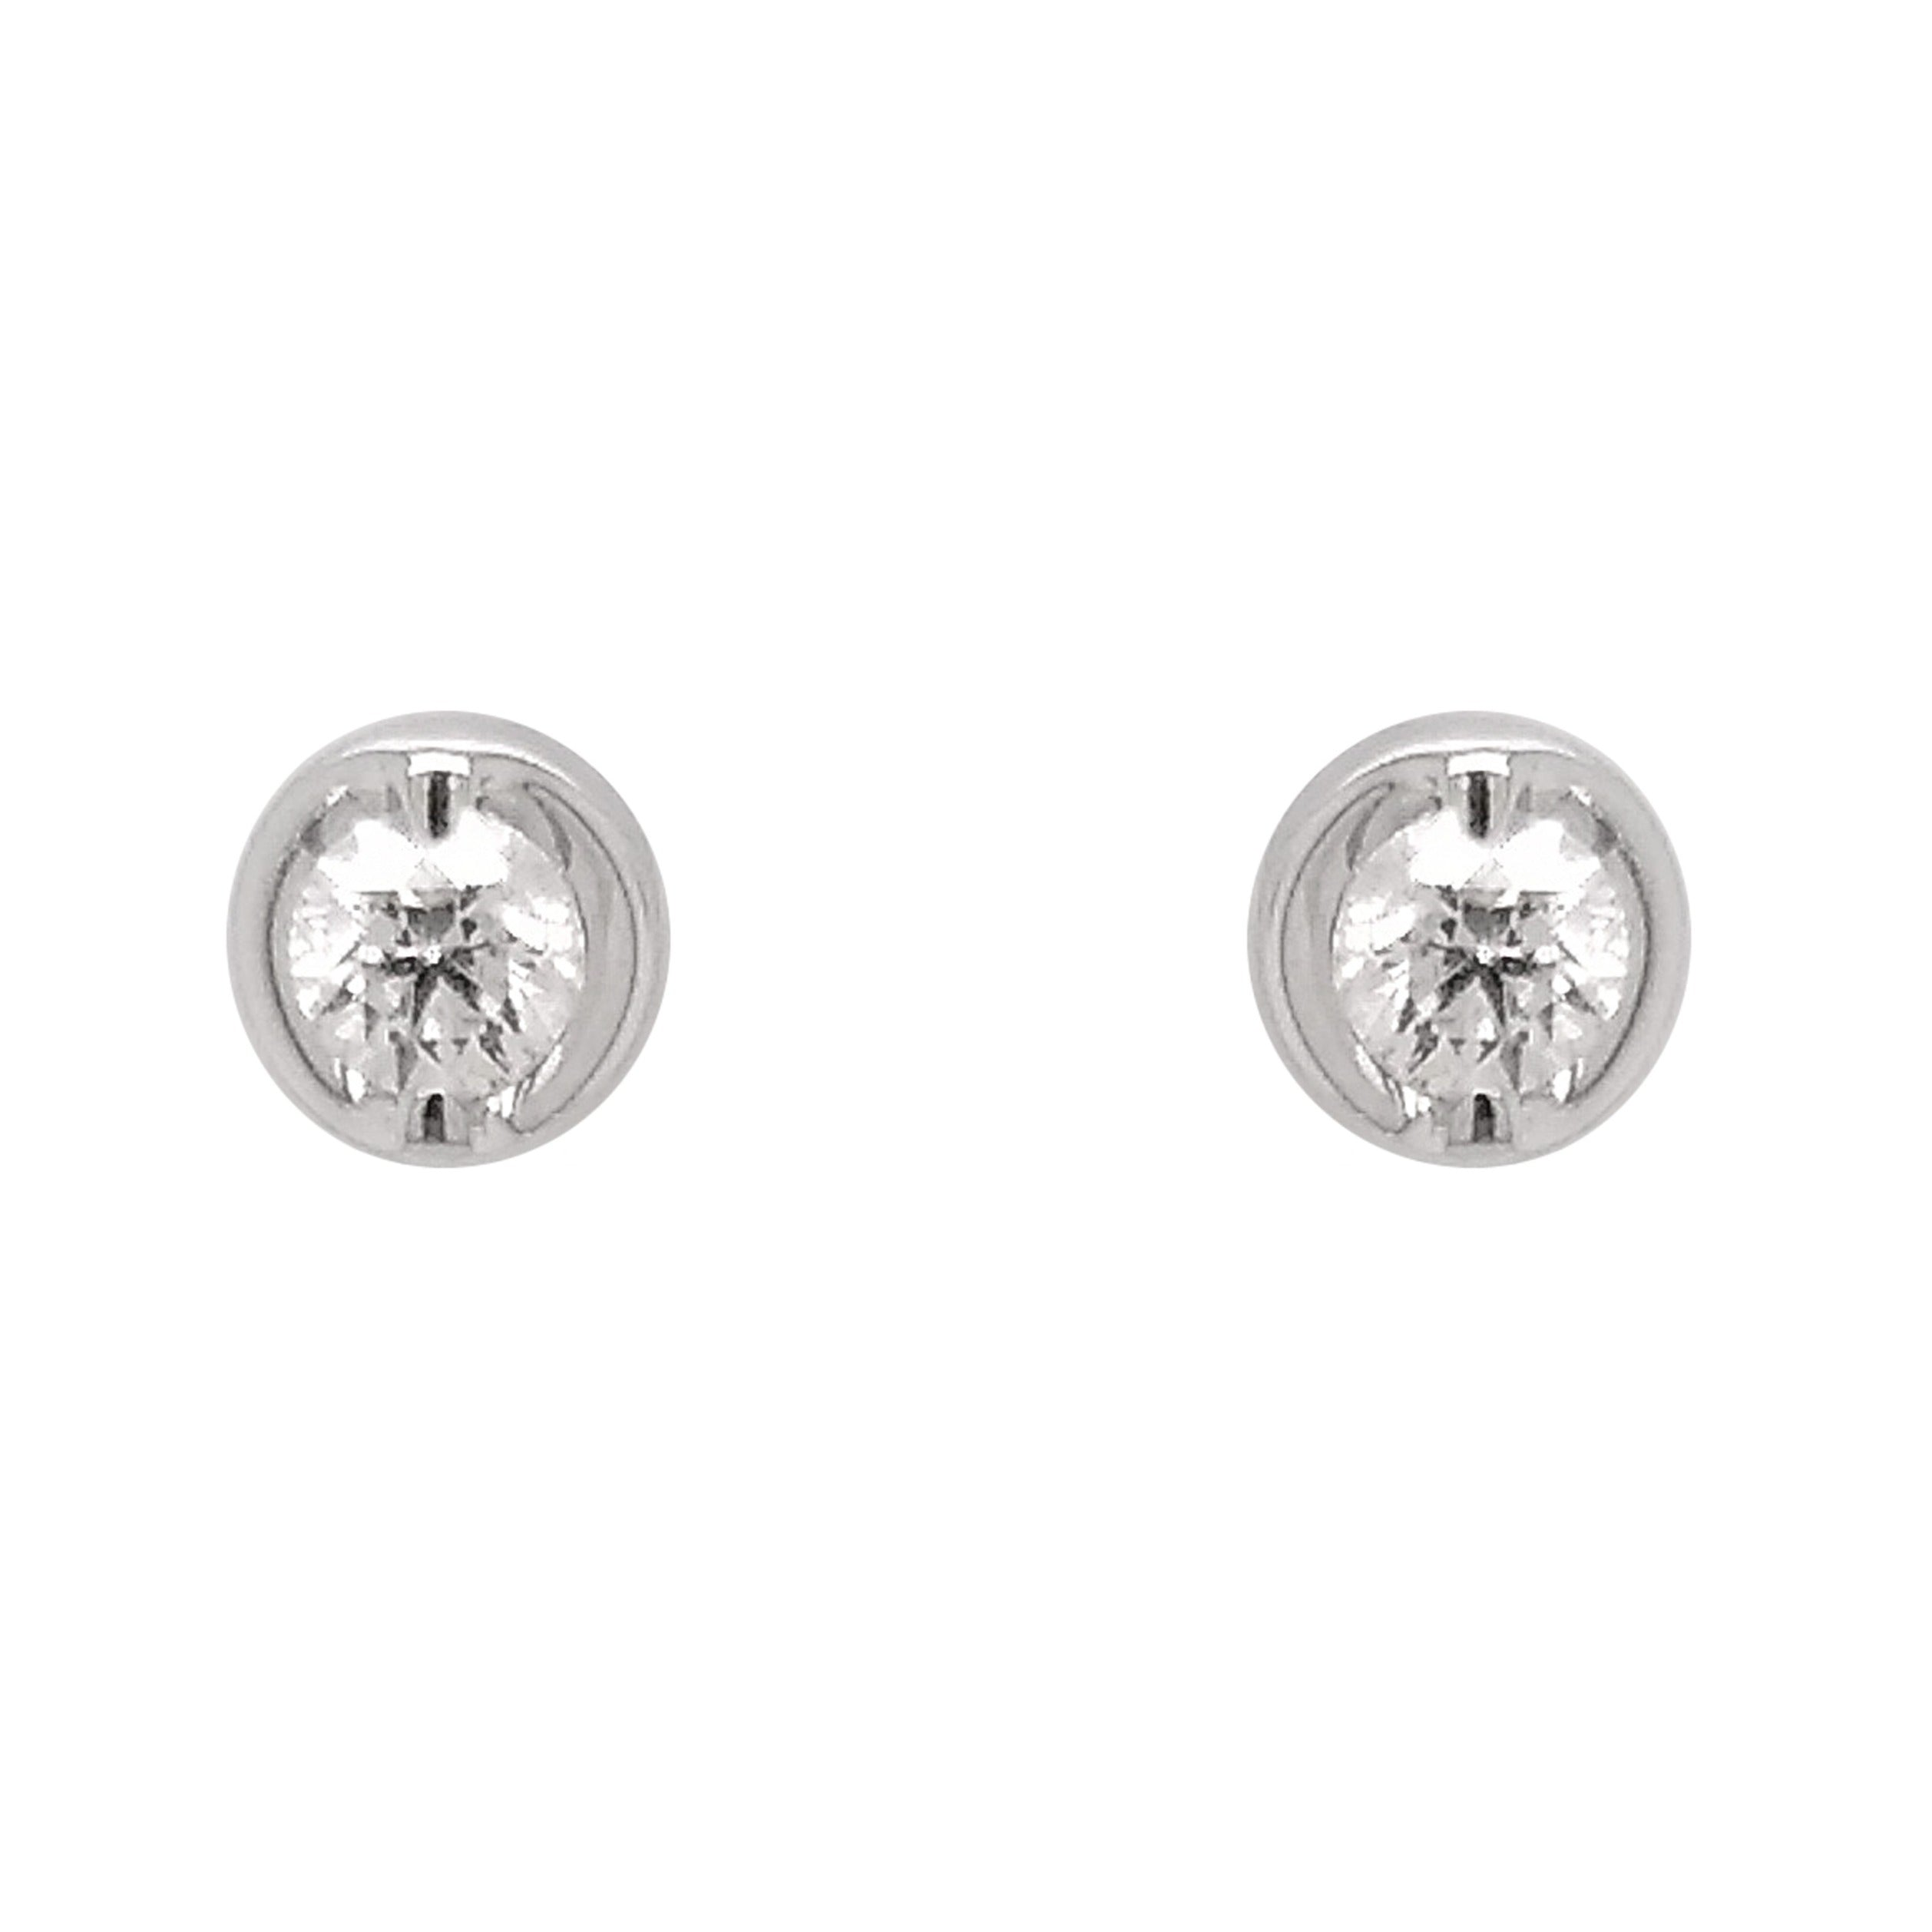 18ct White Gold Rosabella Diamond Earrings